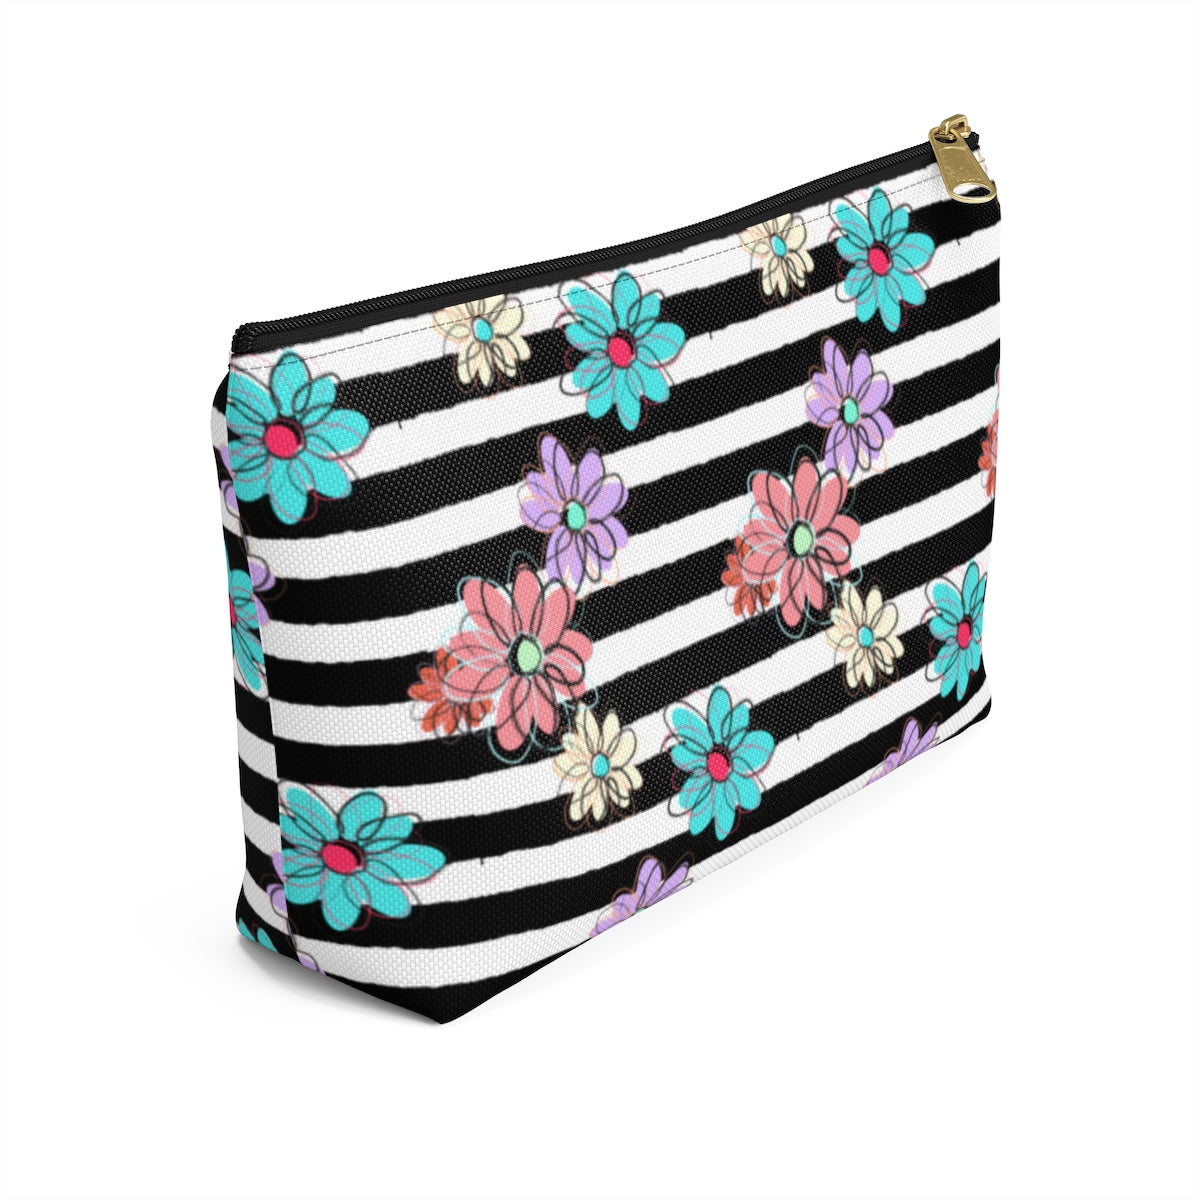 Axel Grayson signature hand bag, charcoal black stripes with sky blue, violet, coral and classic white flower pattern, bag has a black zipper